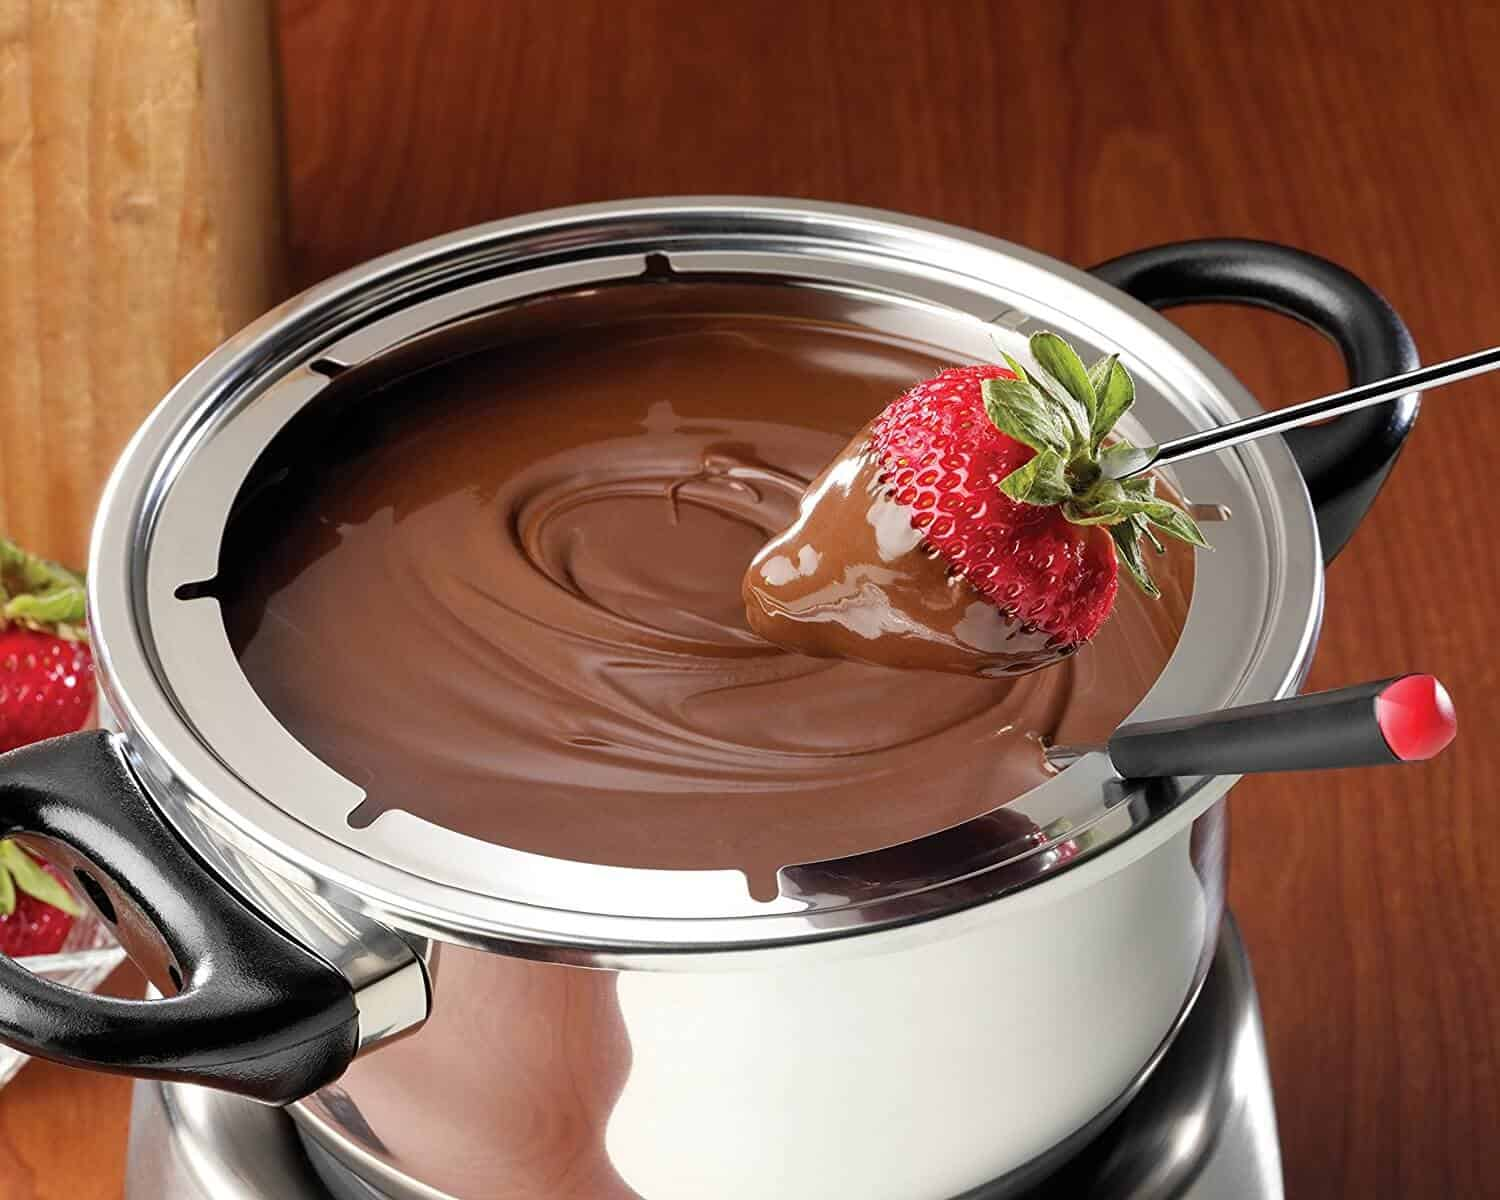 fondue pot full of chocolate fondue with a strawberry being dipped in